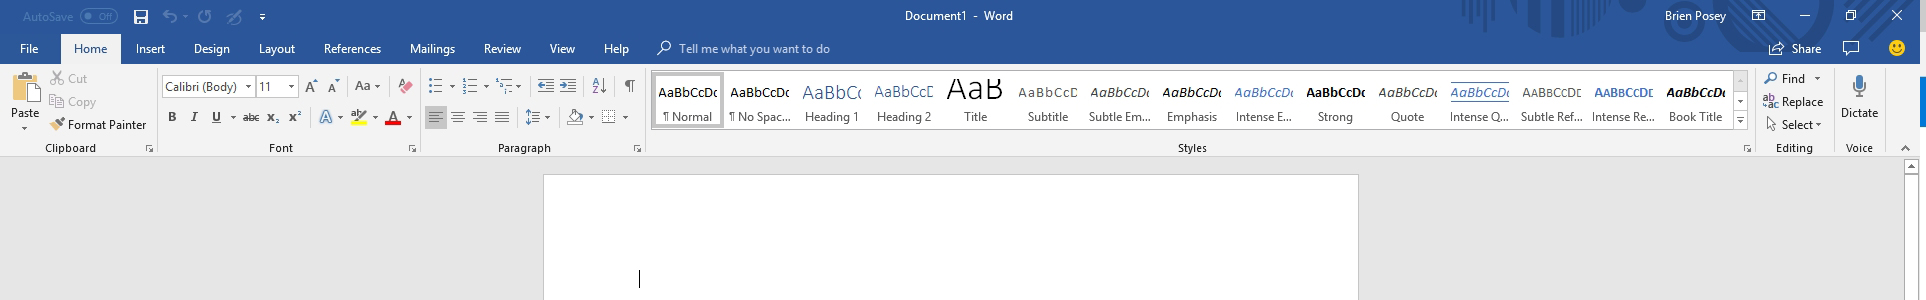 Taking a Fresh Look at Dictation in Microsoft Office